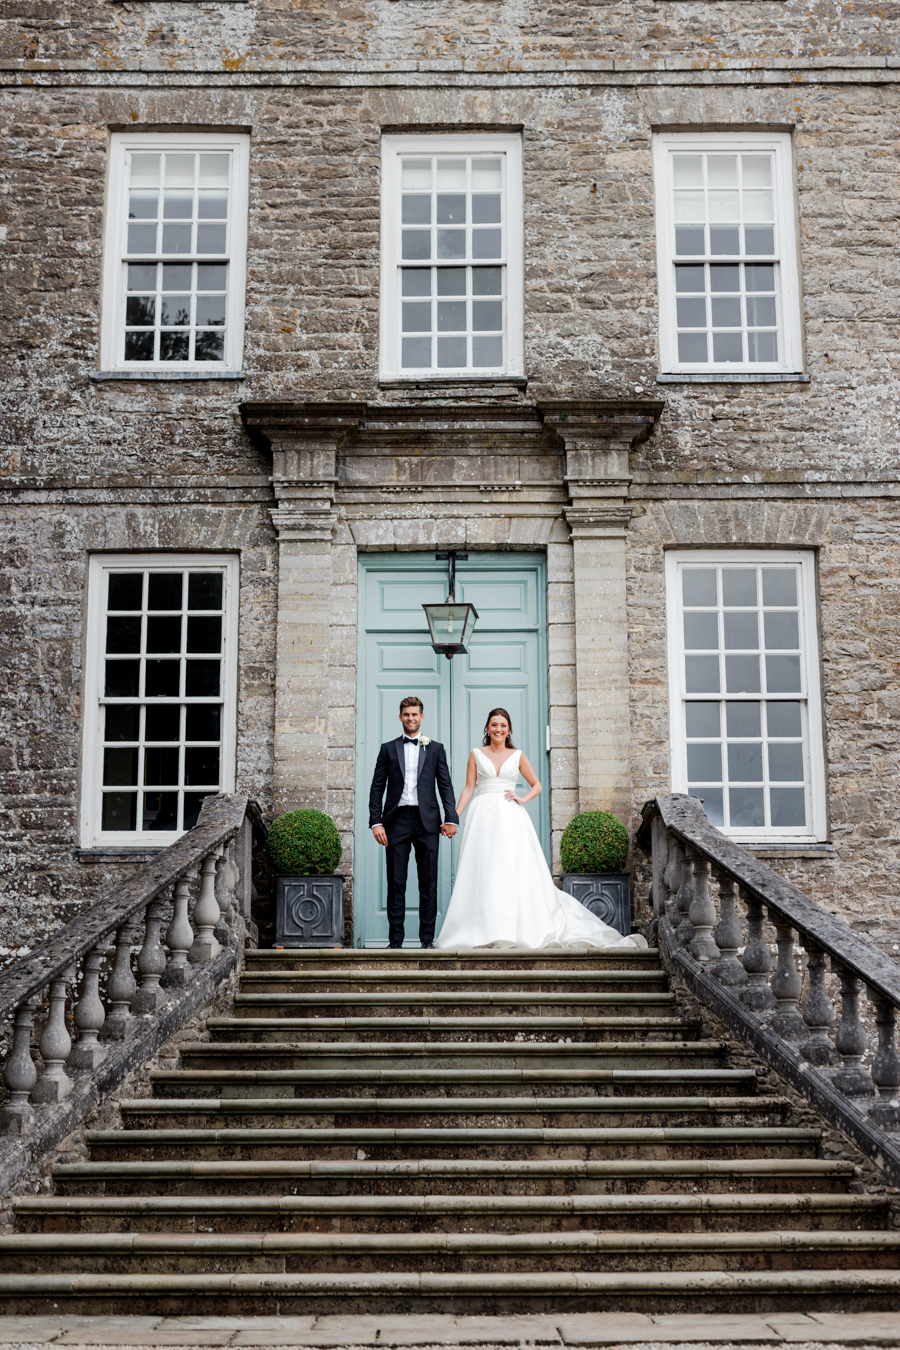 Elegant wedding at Kingston Estate, images by Sam Box Photography on the English Wedding Blog (29)